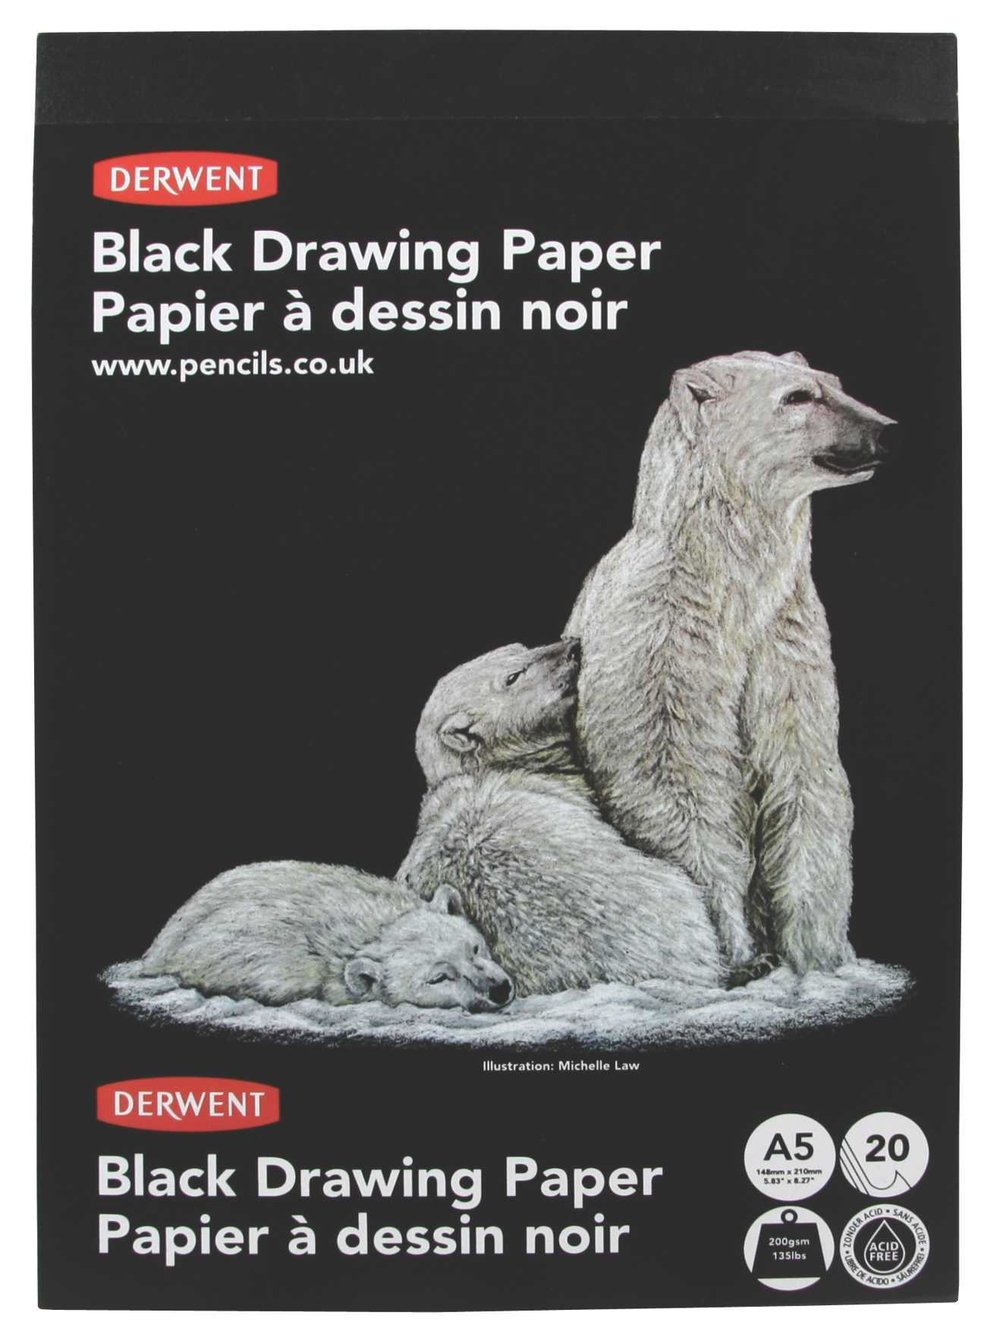 Derwent Sketch Pad, A3, Landscape, 16.54 x 11.69 Inches Page Size, 20 Black Pages (2300467) ACCO Brands